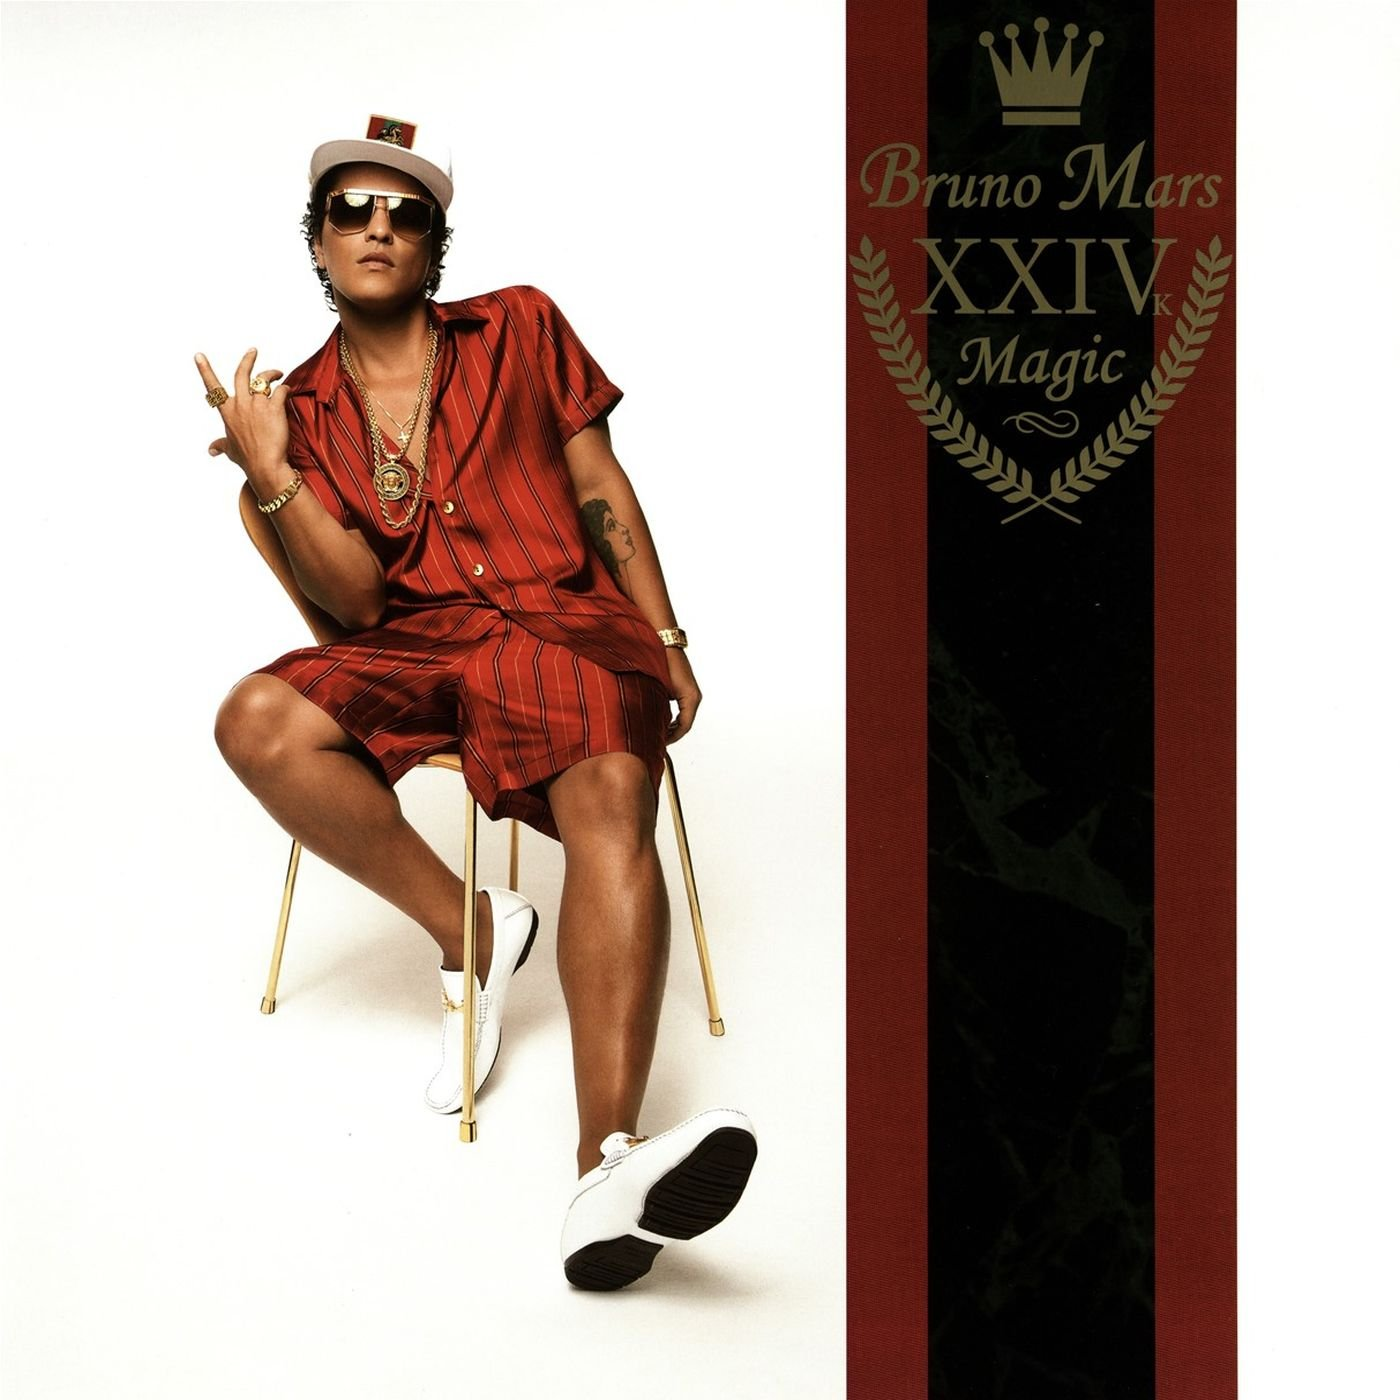 Vinilo : Bruno Mars - 24k Magic (Digital Download Card)